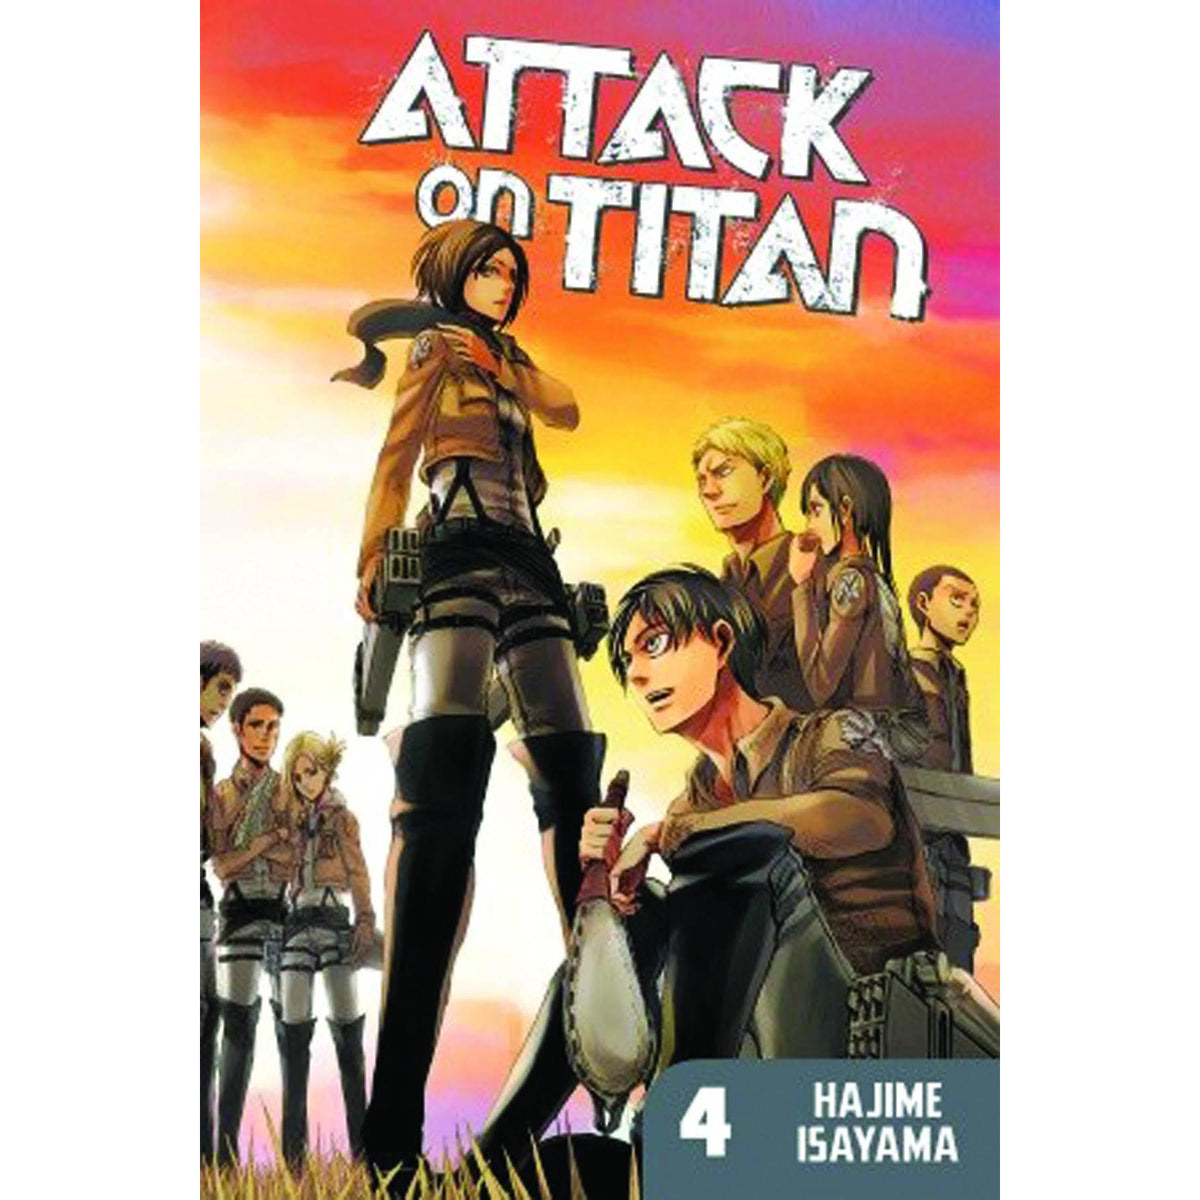 ATTACK ON TITAN VOLUME 04